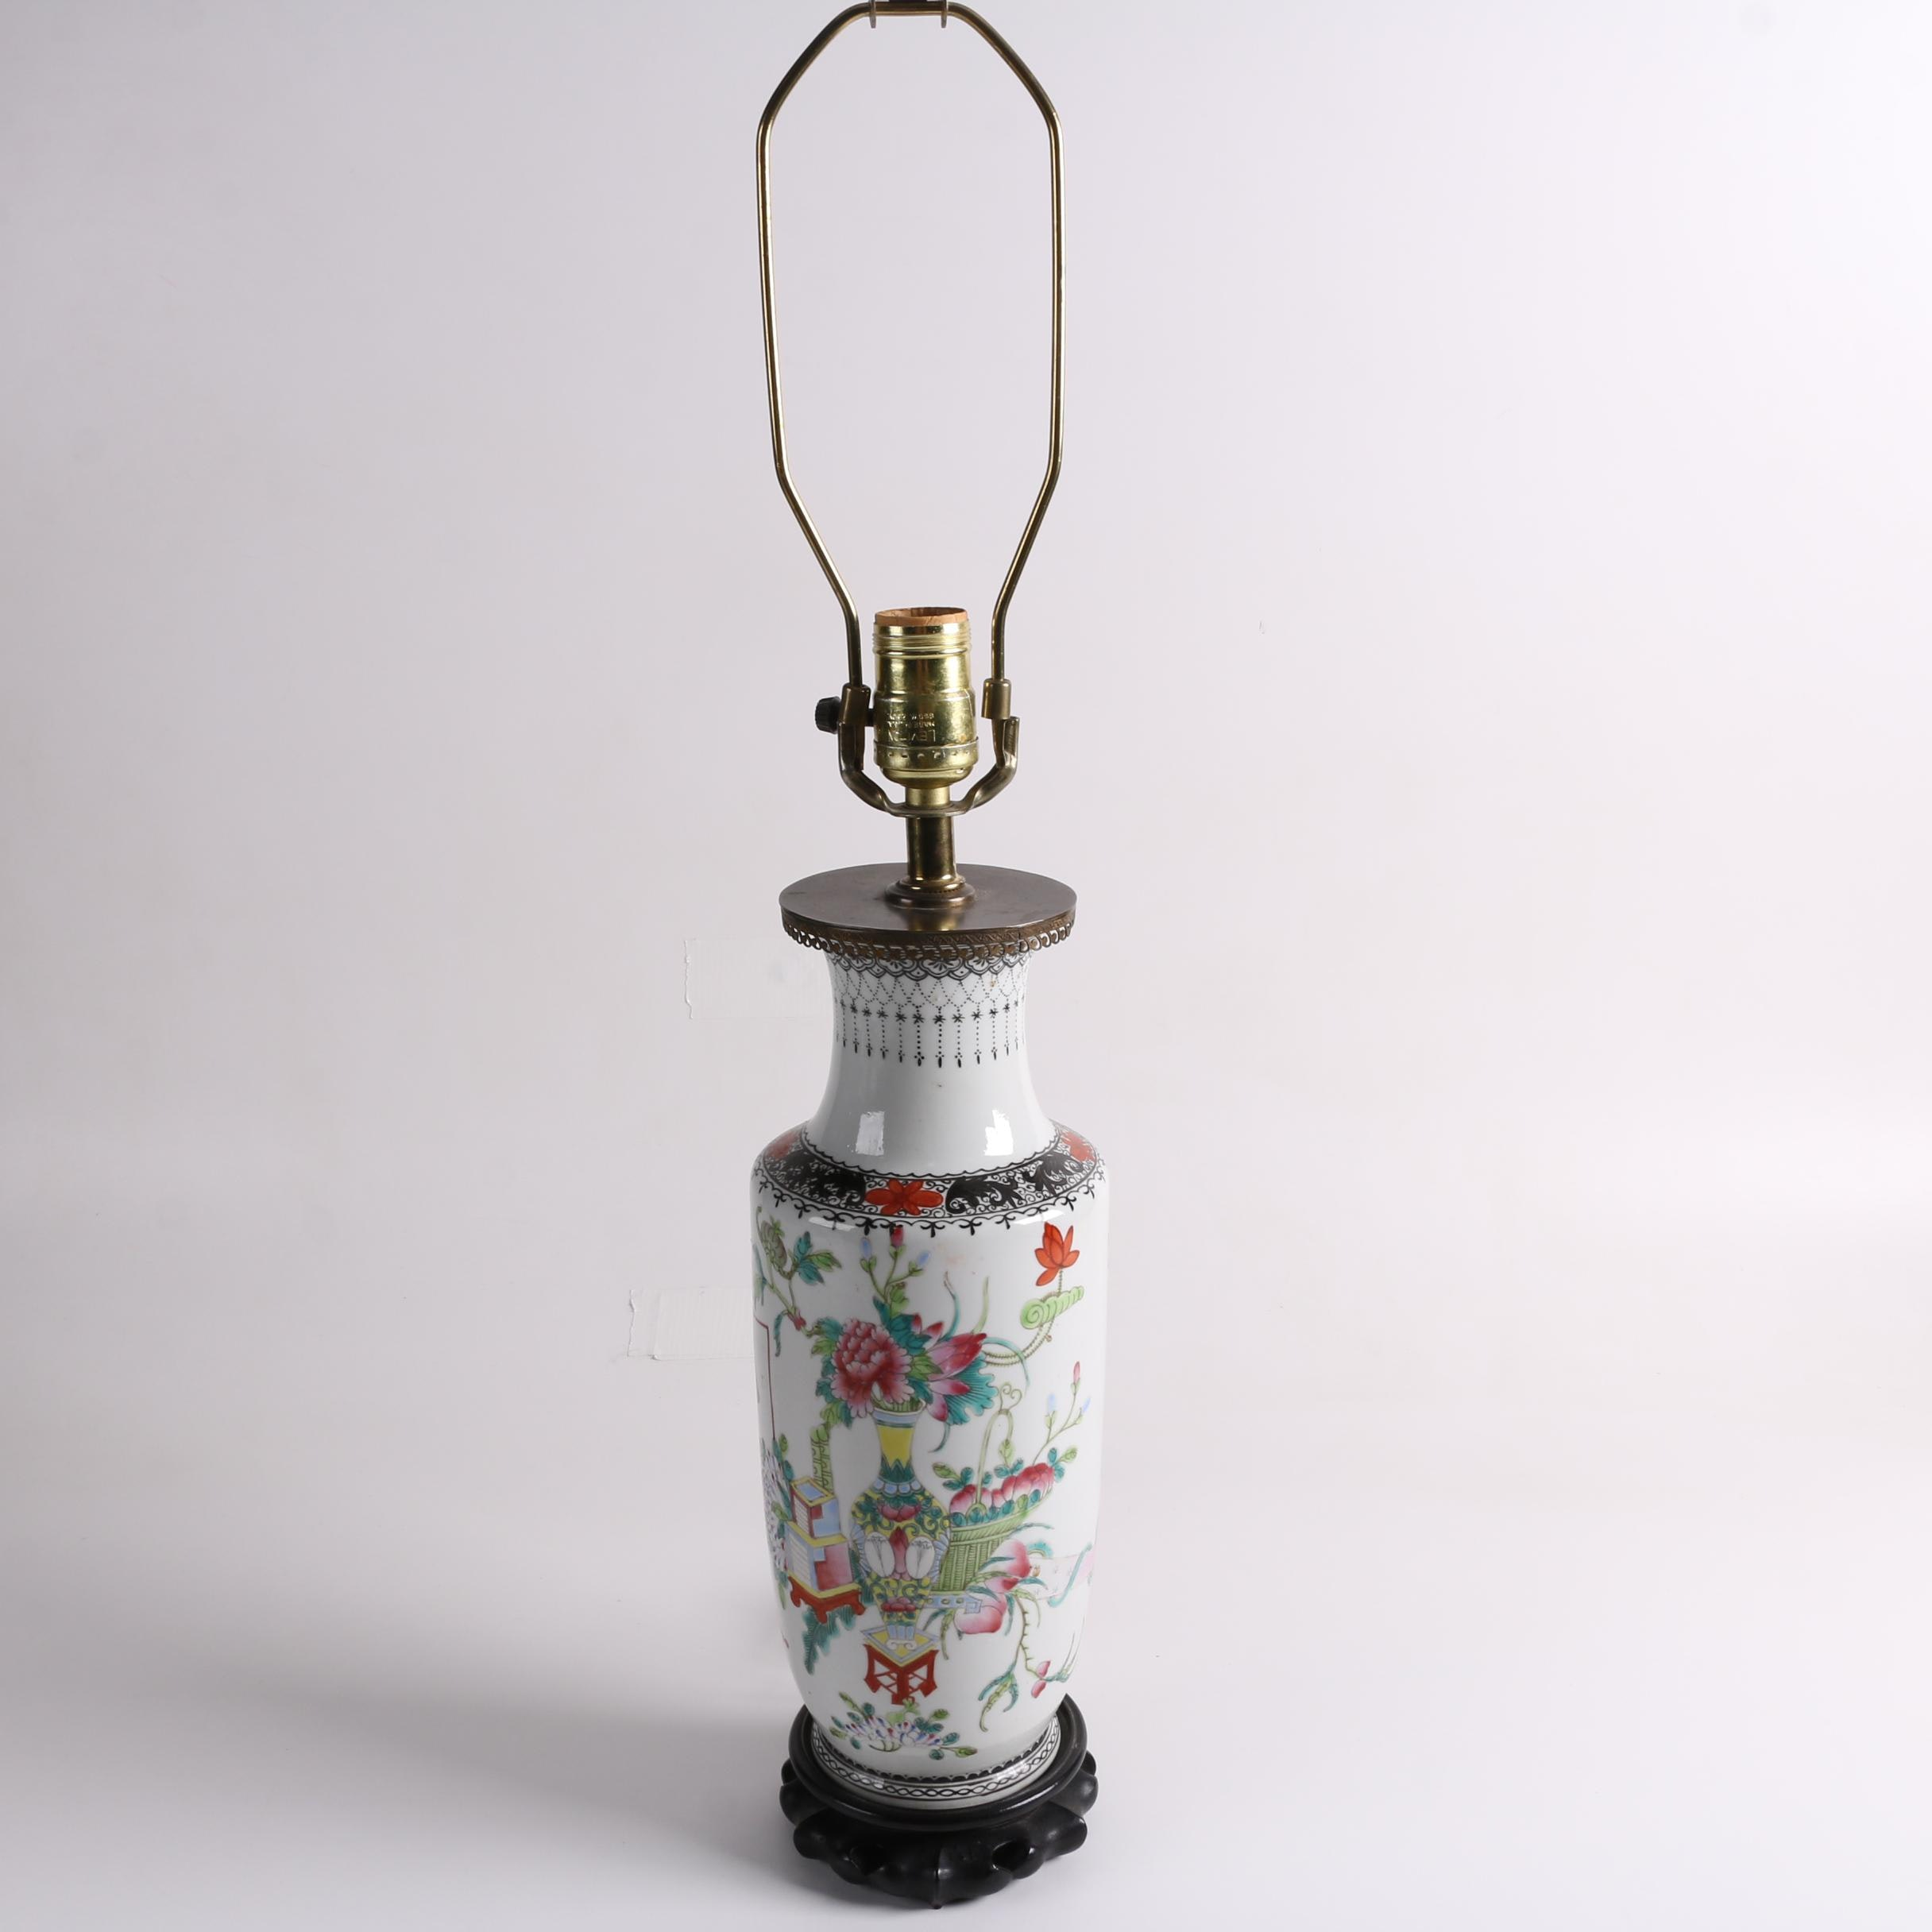 Chinese Hand-Painted Ceramic Vase Shaped Table Lamp